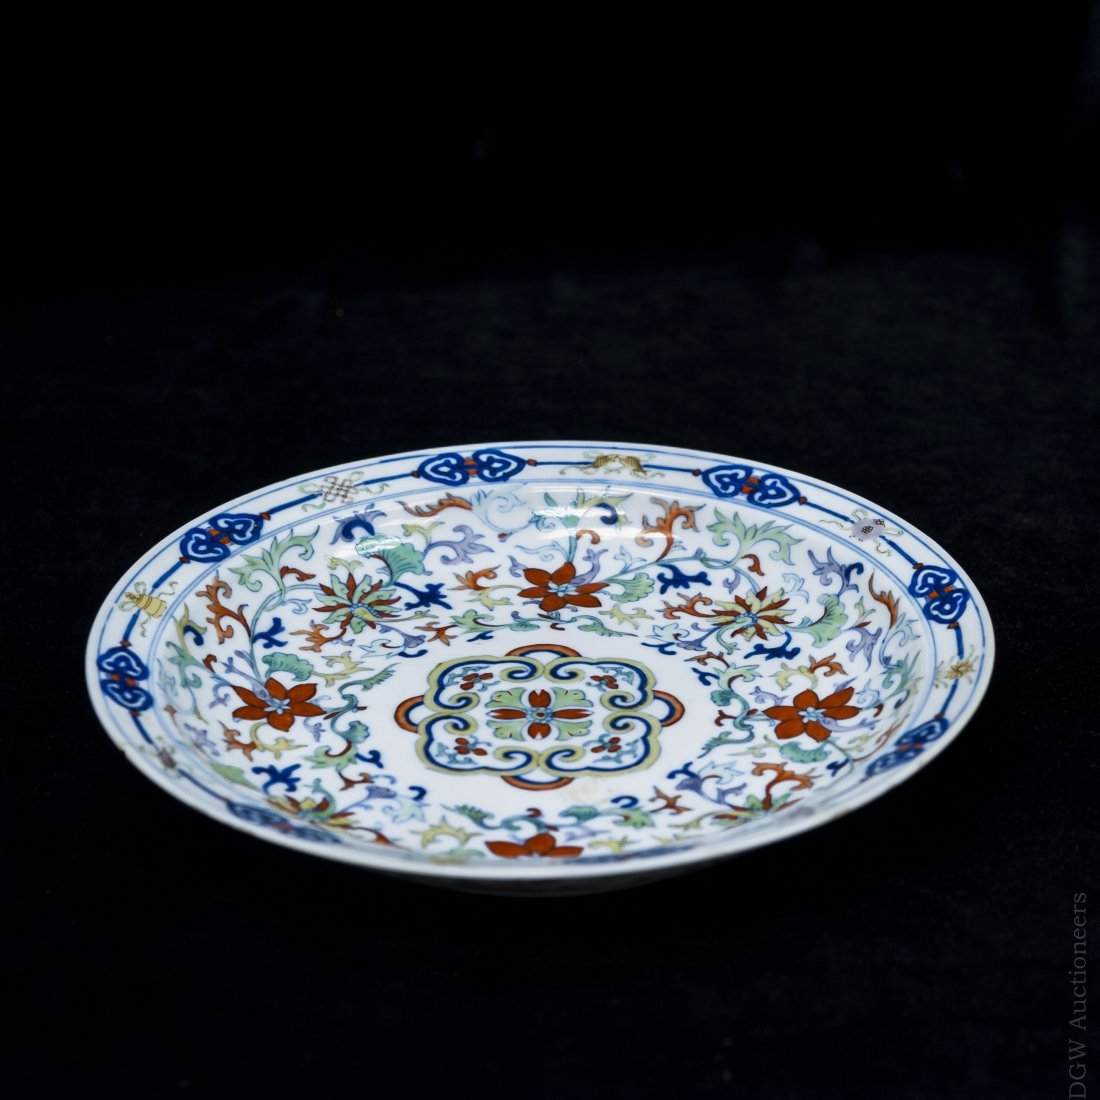 Chinese Porcelain Plate, possibly 18th C.